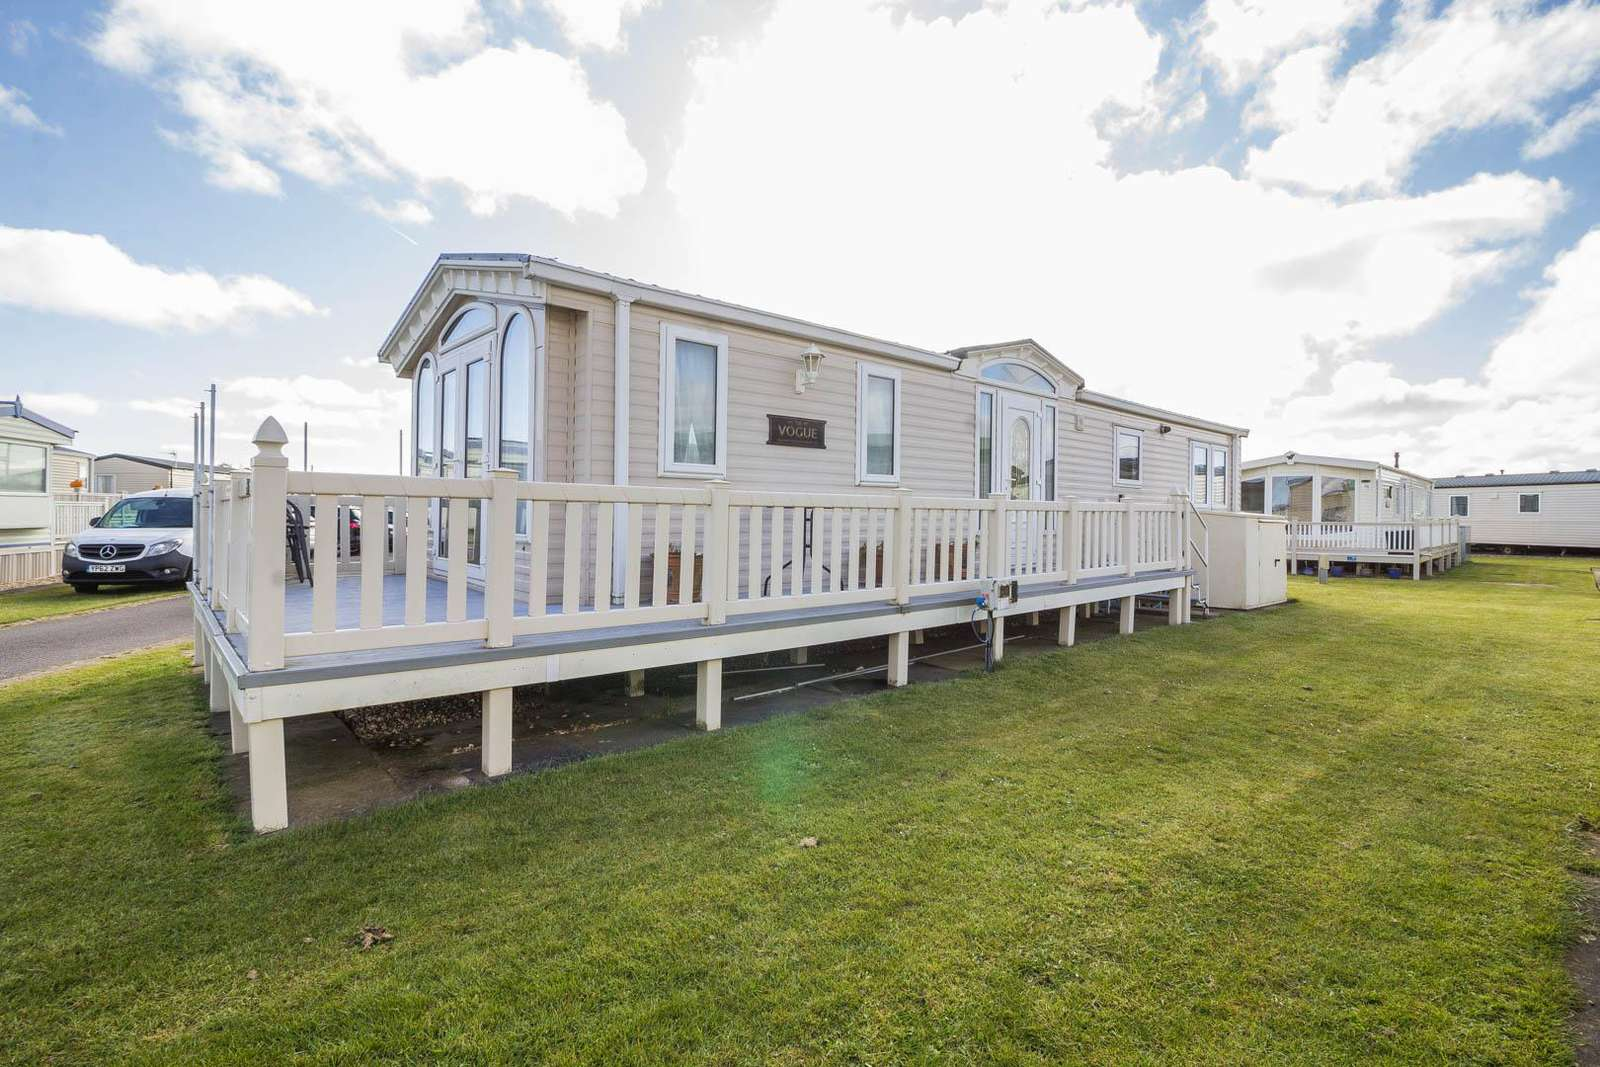 42076S – Sunkist, 2 bed, 4 berth caravan with decking, D/G & C/H. Diamond rated. - property